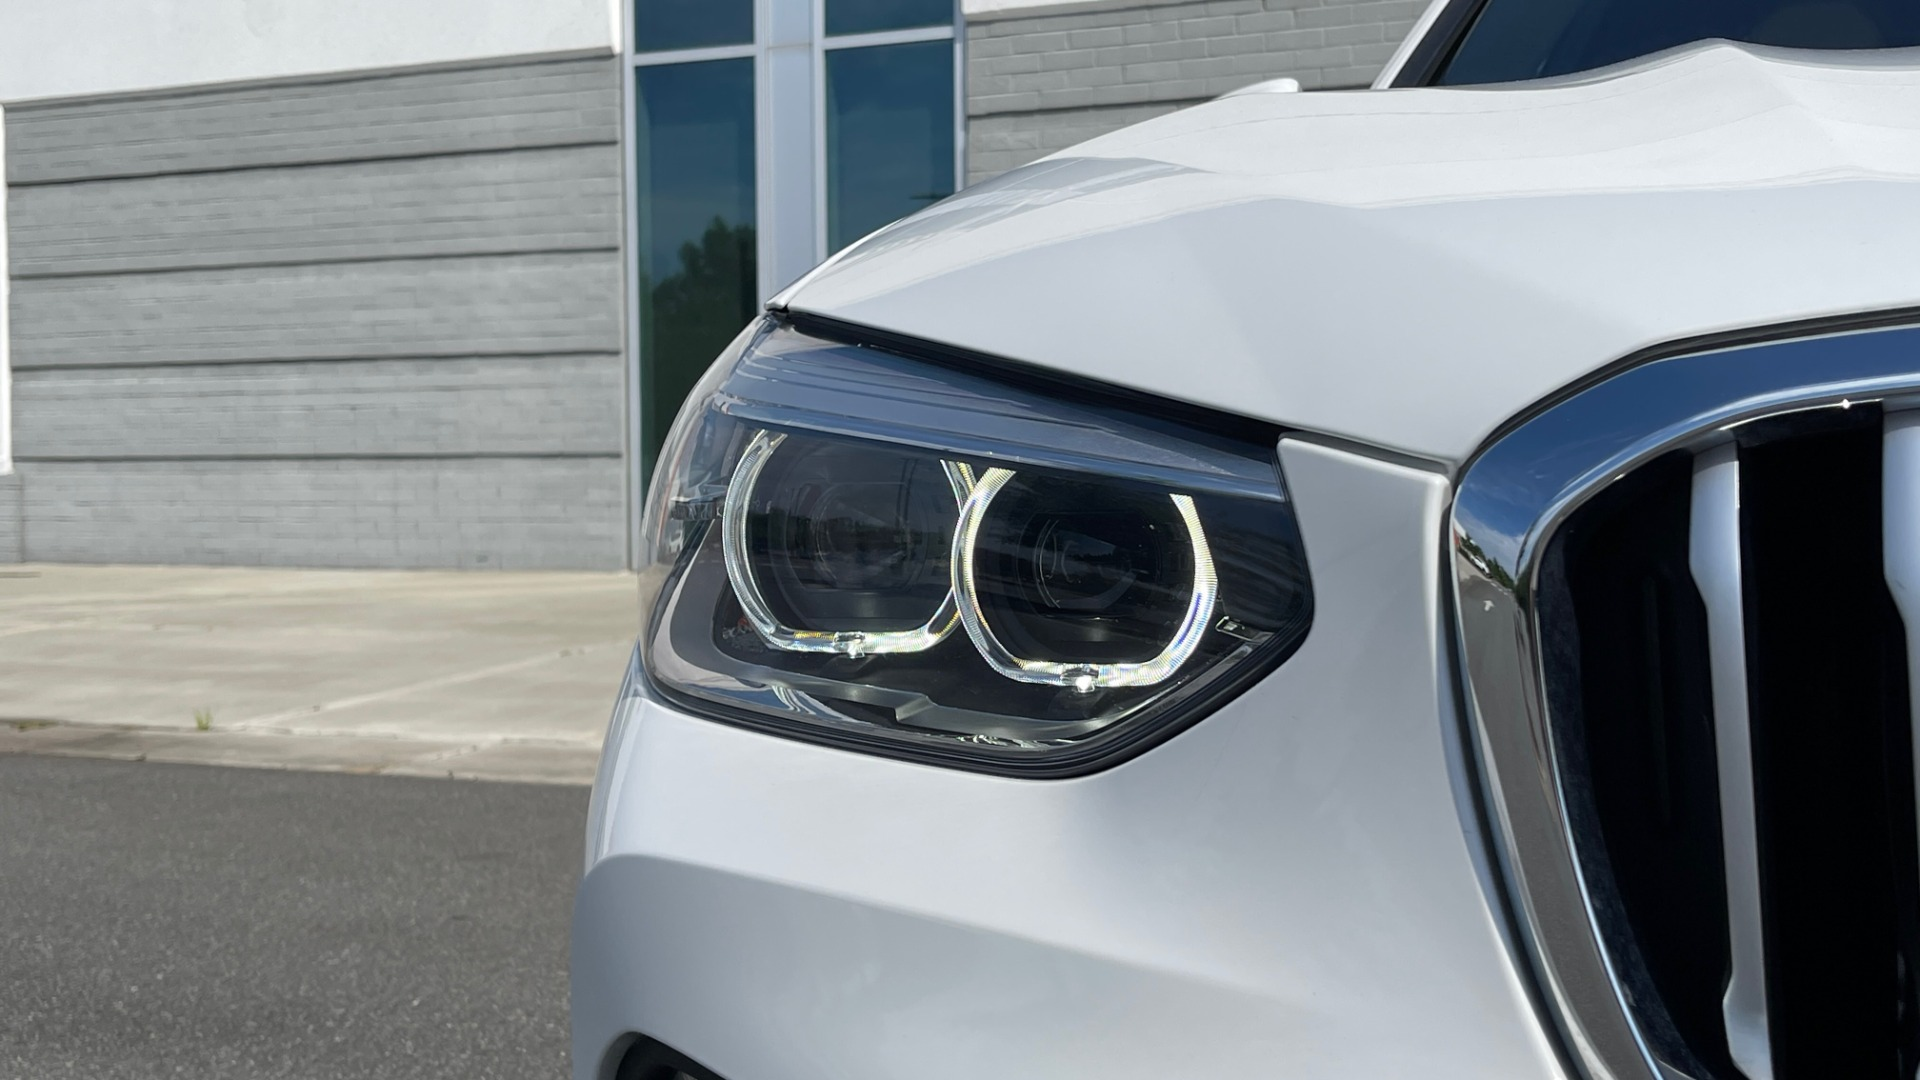 Used 2018 BMW X3 XDRIVE30I CONVENIENCE PKG / HEATED FRONT SEATS / REARVIEW for sale $36,595 at Formula Imports in Charlotte NC 28227 12